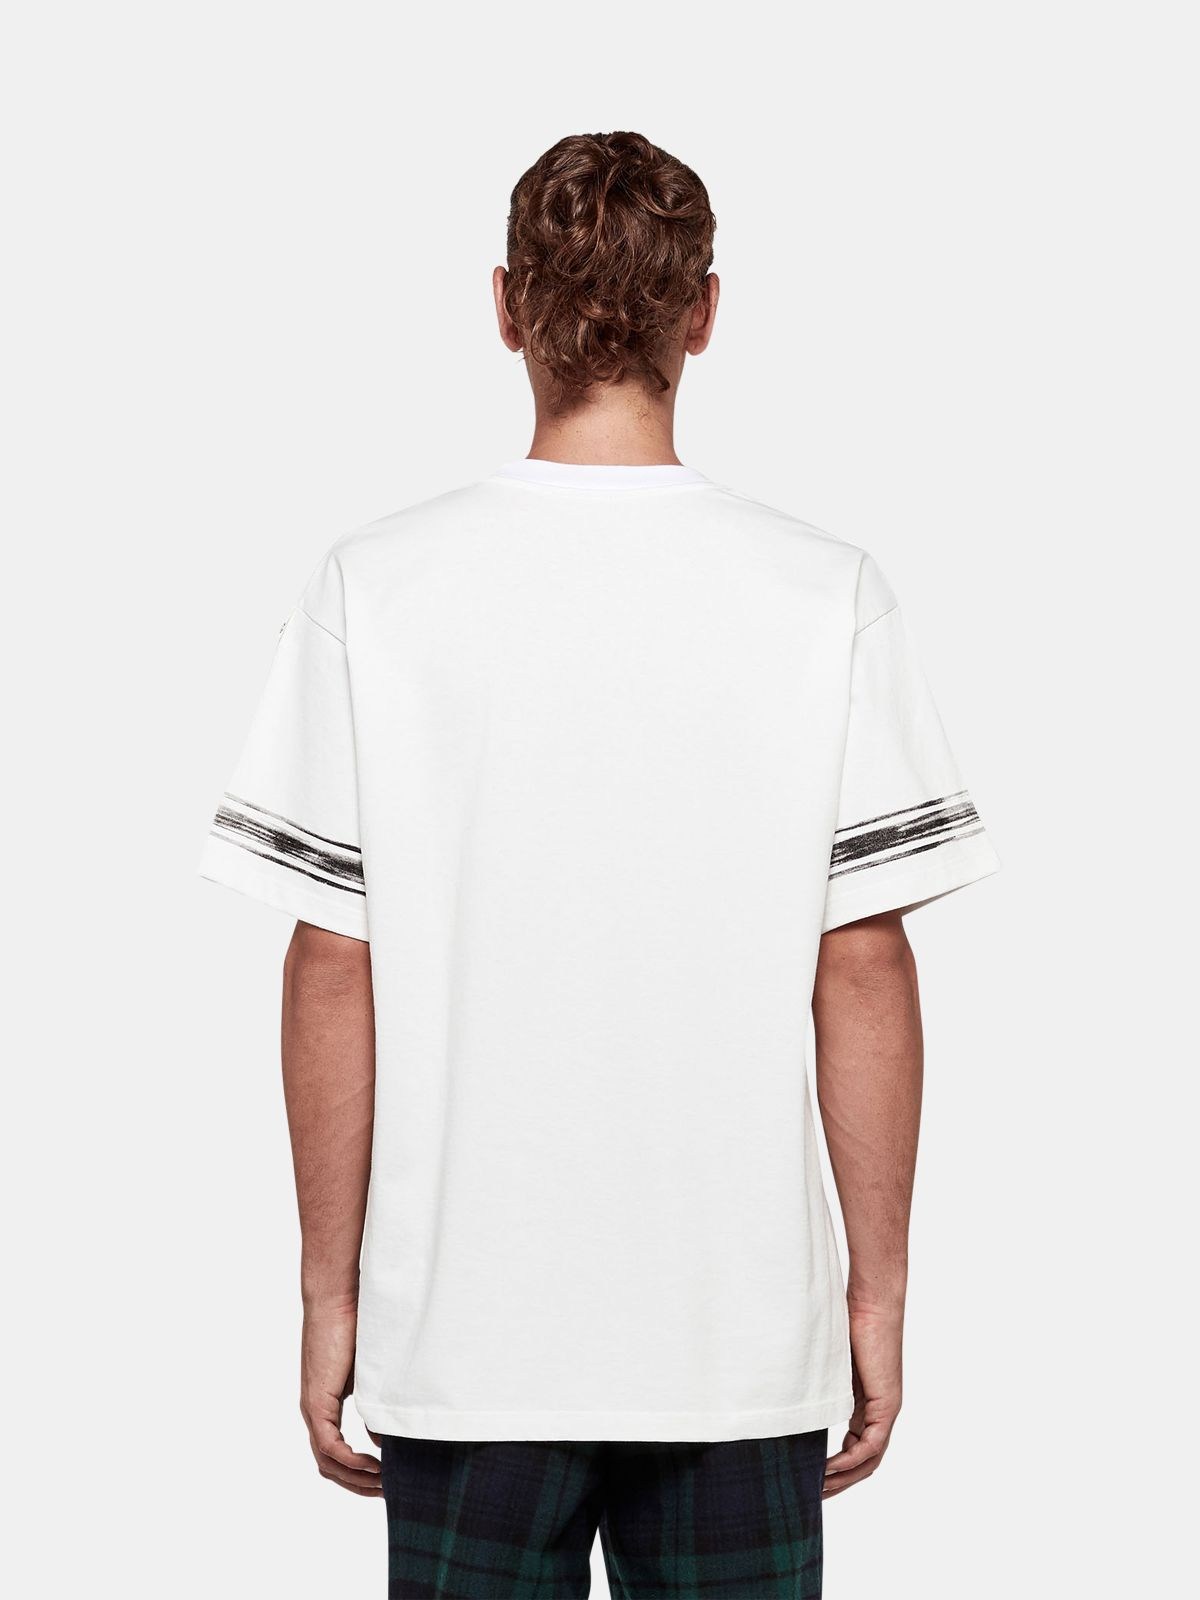 Golden Goose - Ryo T-shirt in cotton jersey with logo and contrast stripes in